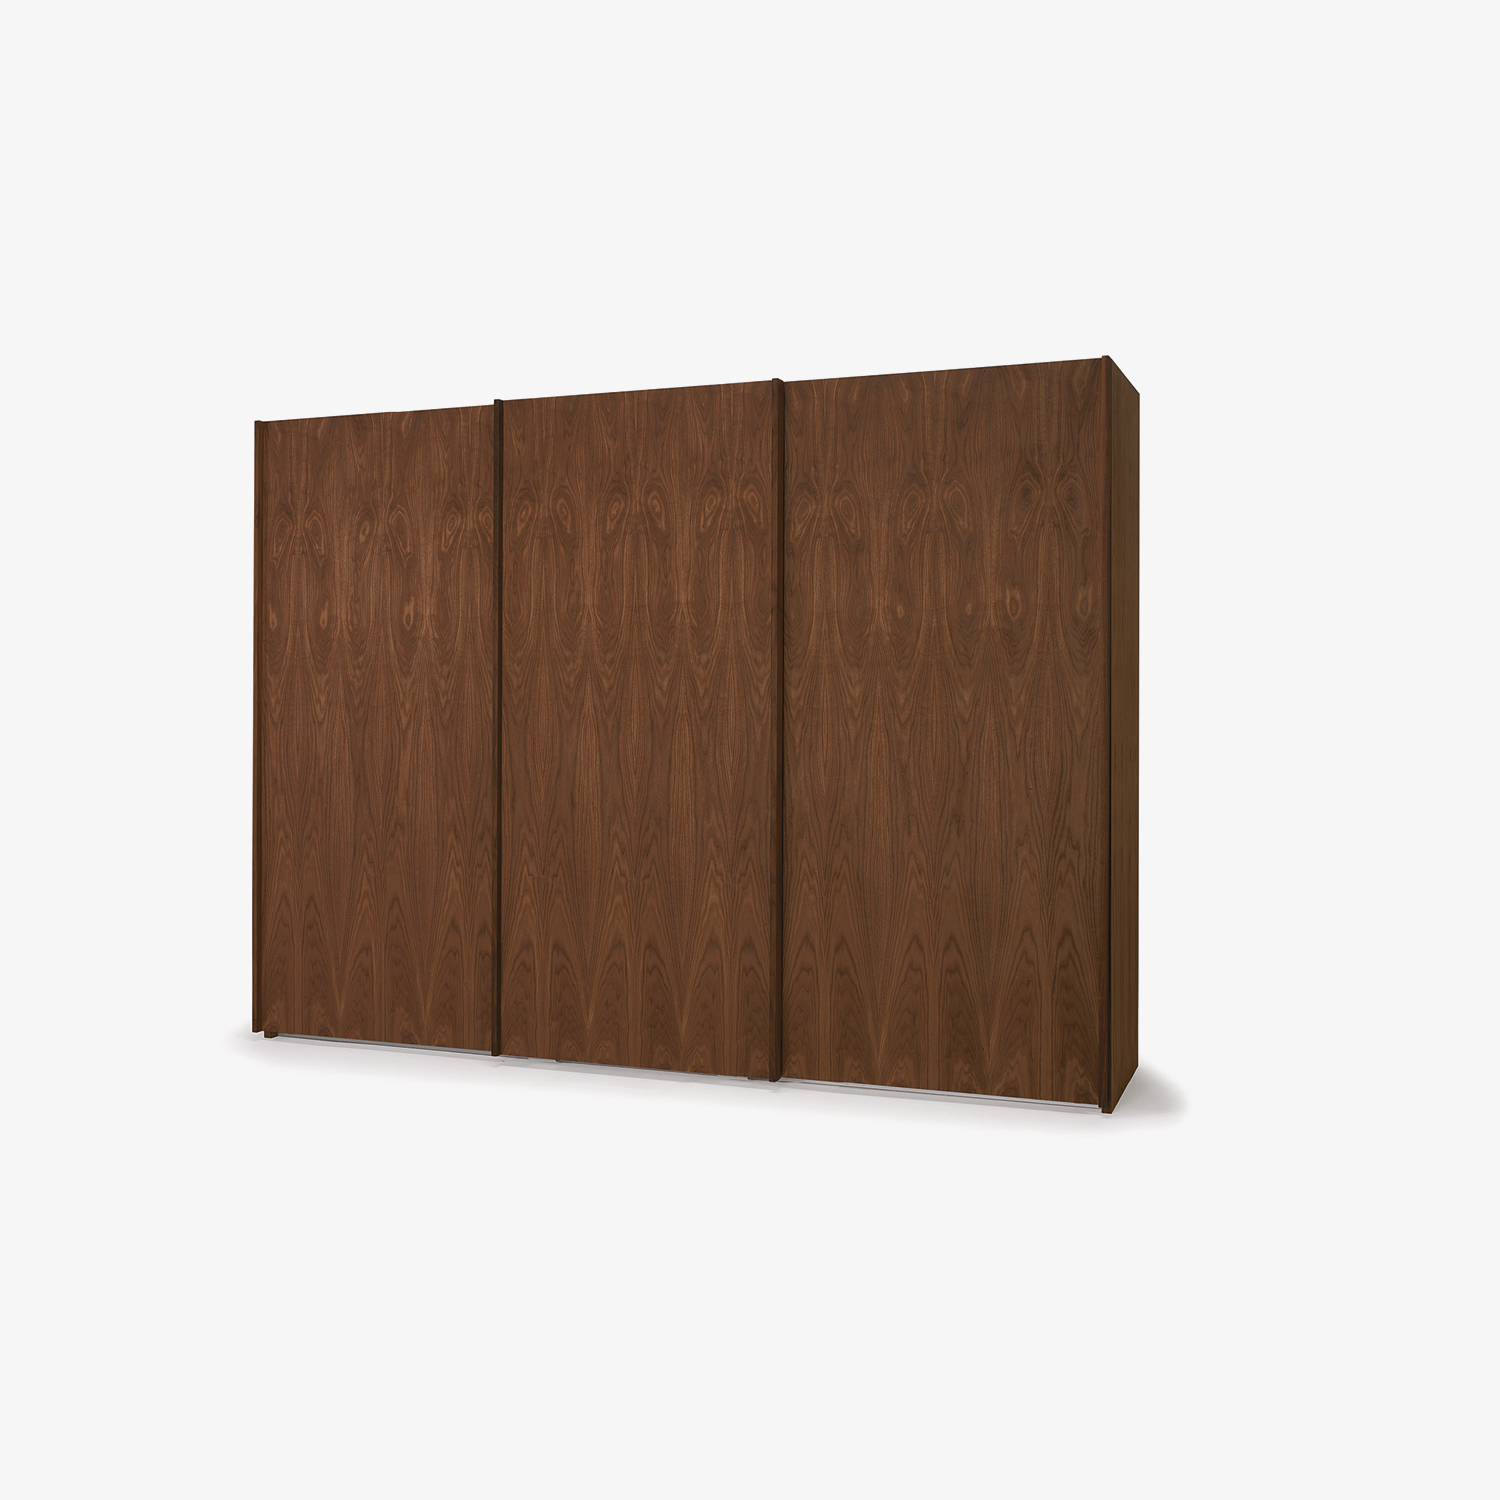 Design wardrobe solid wood sliding door handles HANGAR LIGHT | Solid wood wardrobes | Design wardrobes